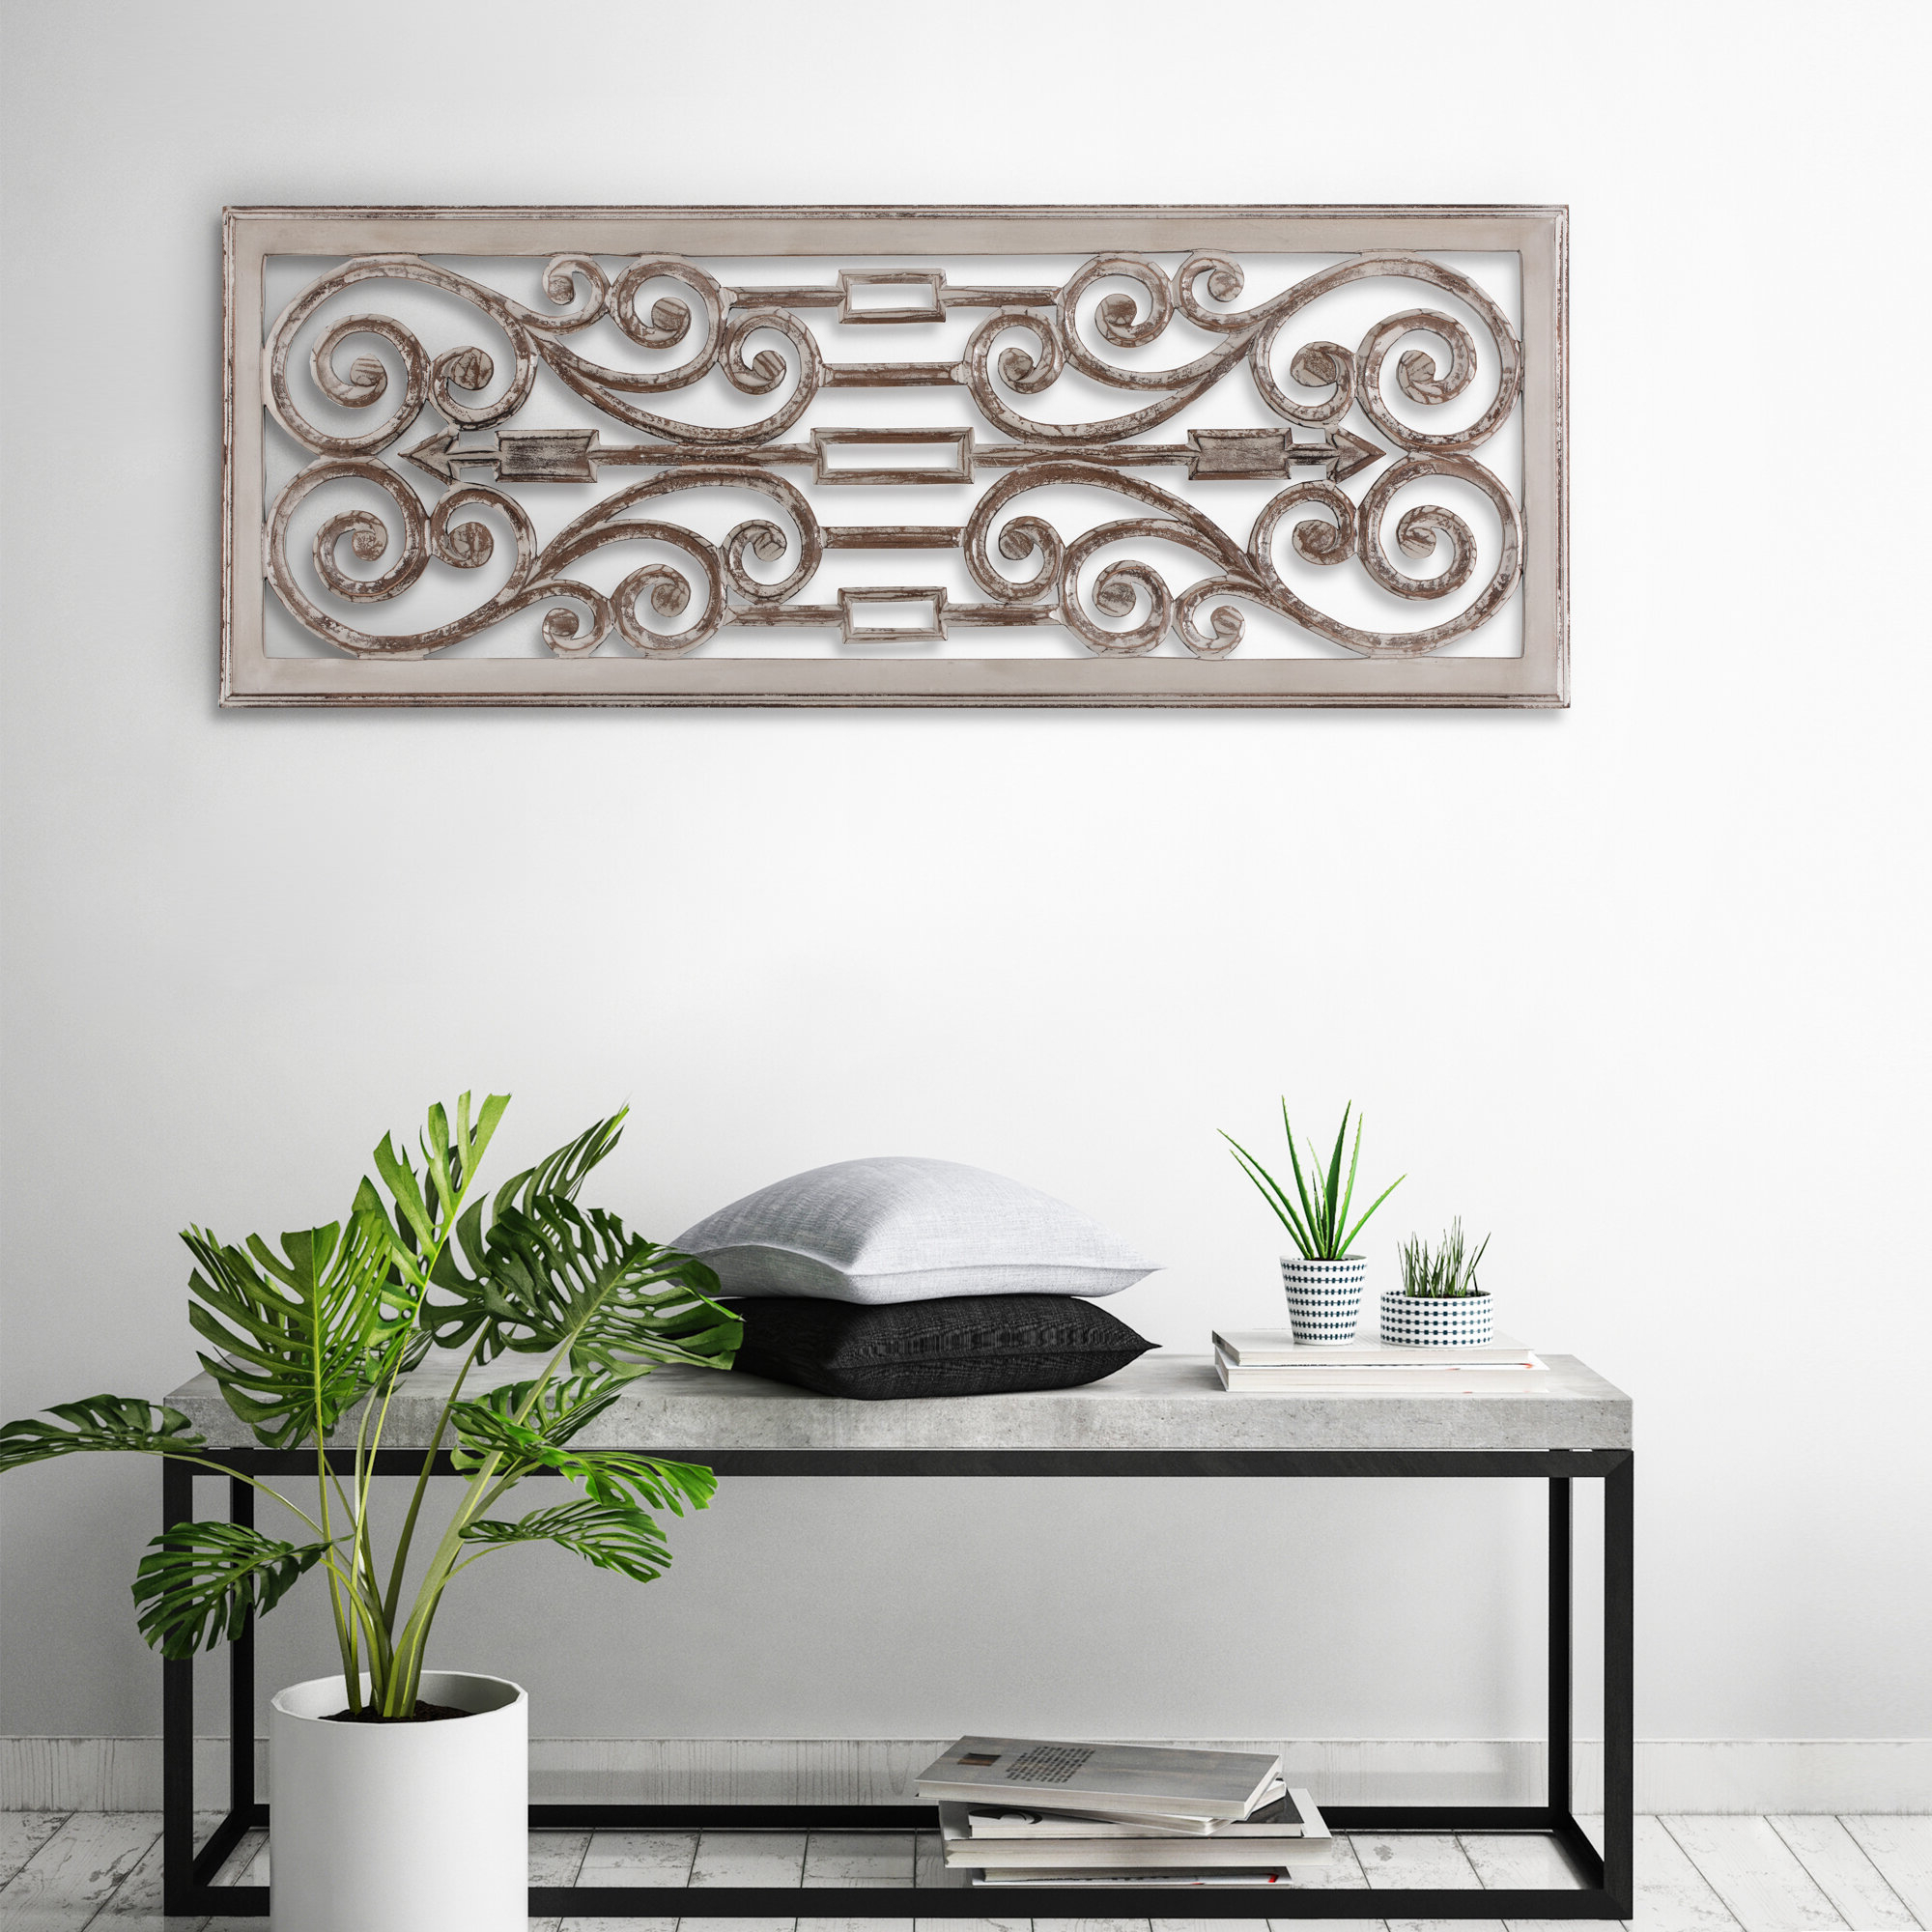 2019 Wall Decor By Ophelia & Co. Inside Ophelia & Co (View 1 of 20)